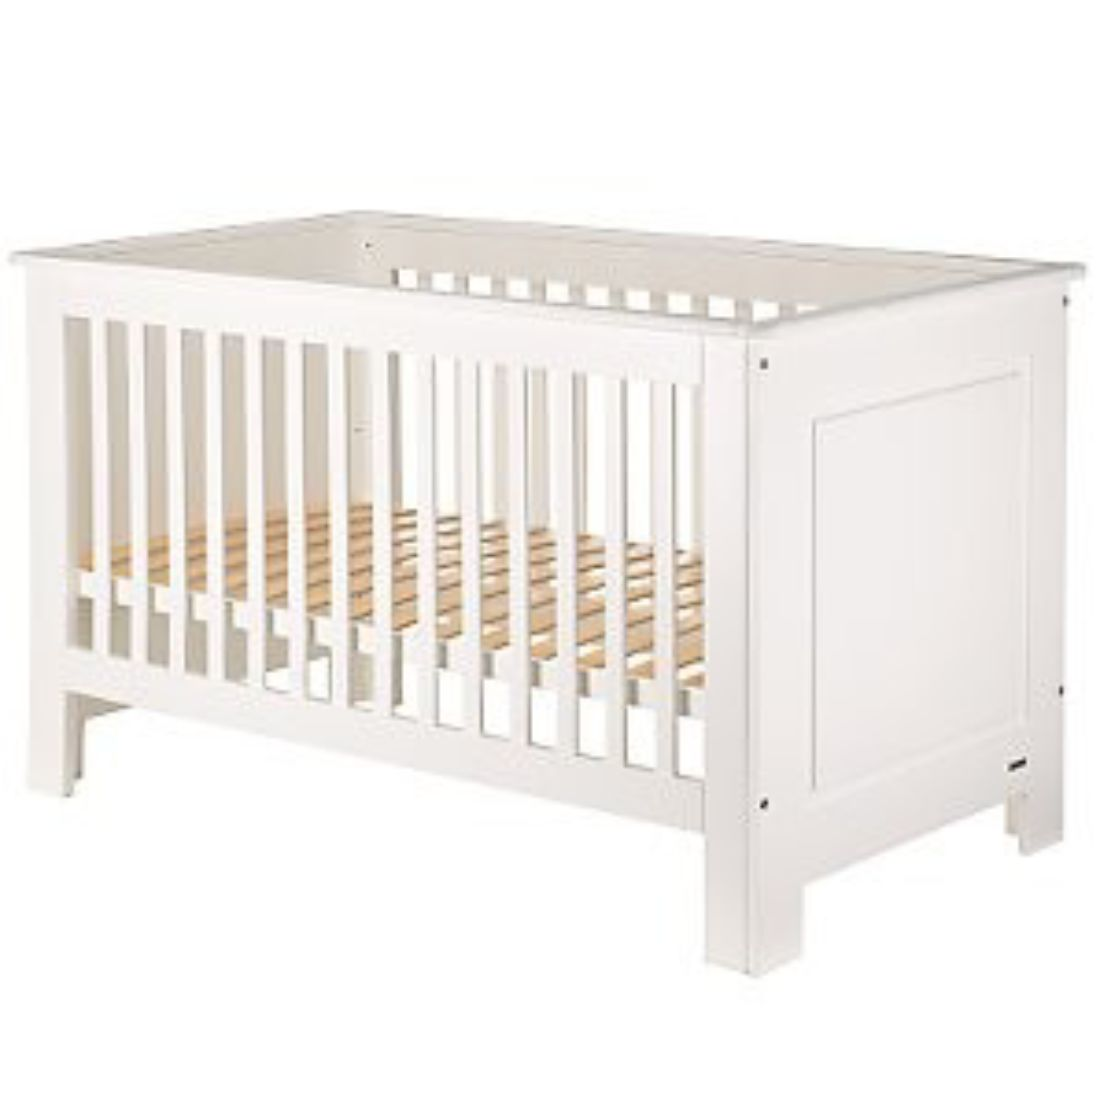 Mattress To Fit John Lewis Deco Cot Bed Mattress Size Is